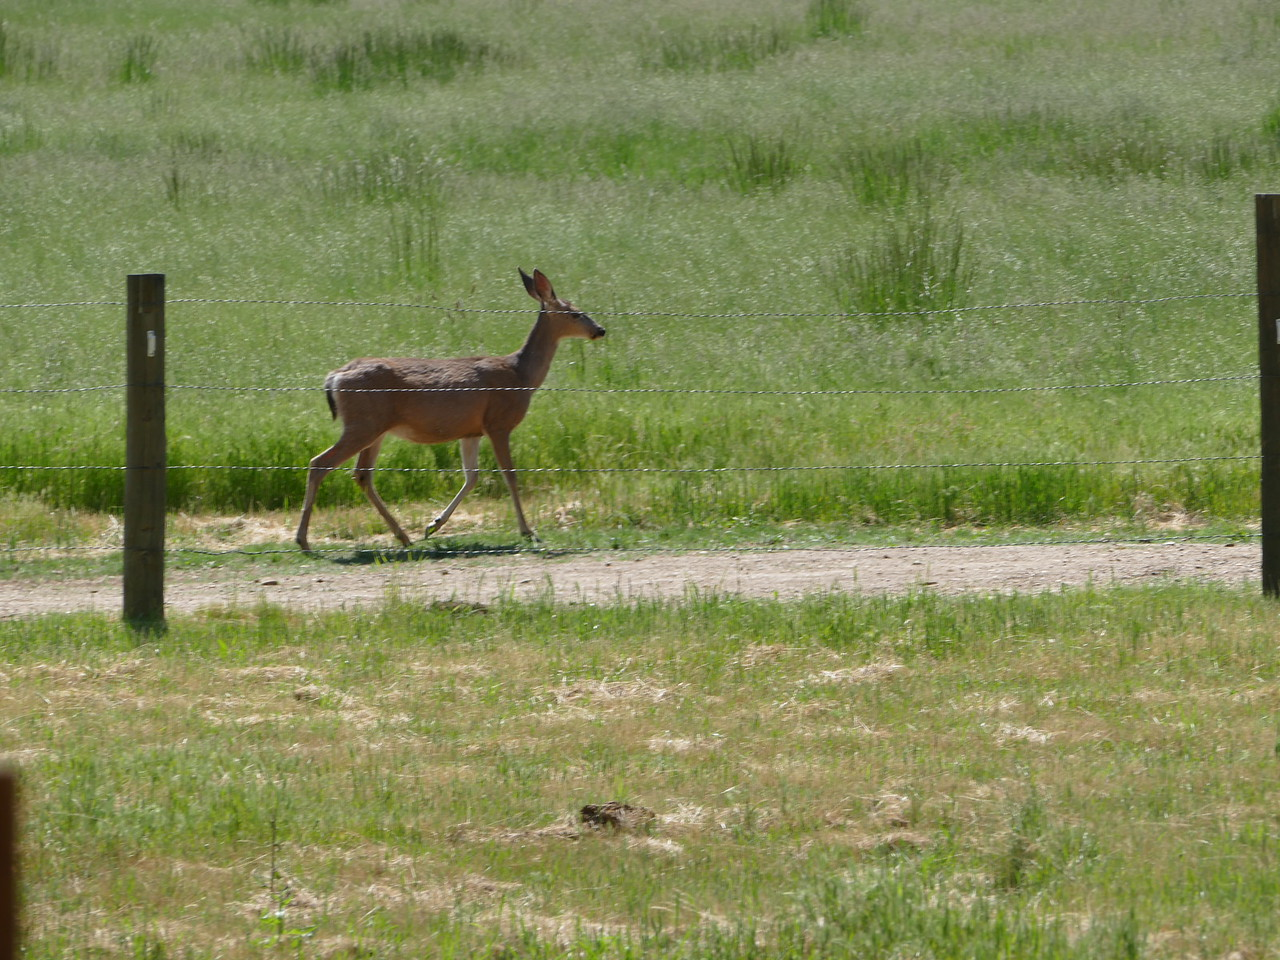 While we were there, a doe strolled by.